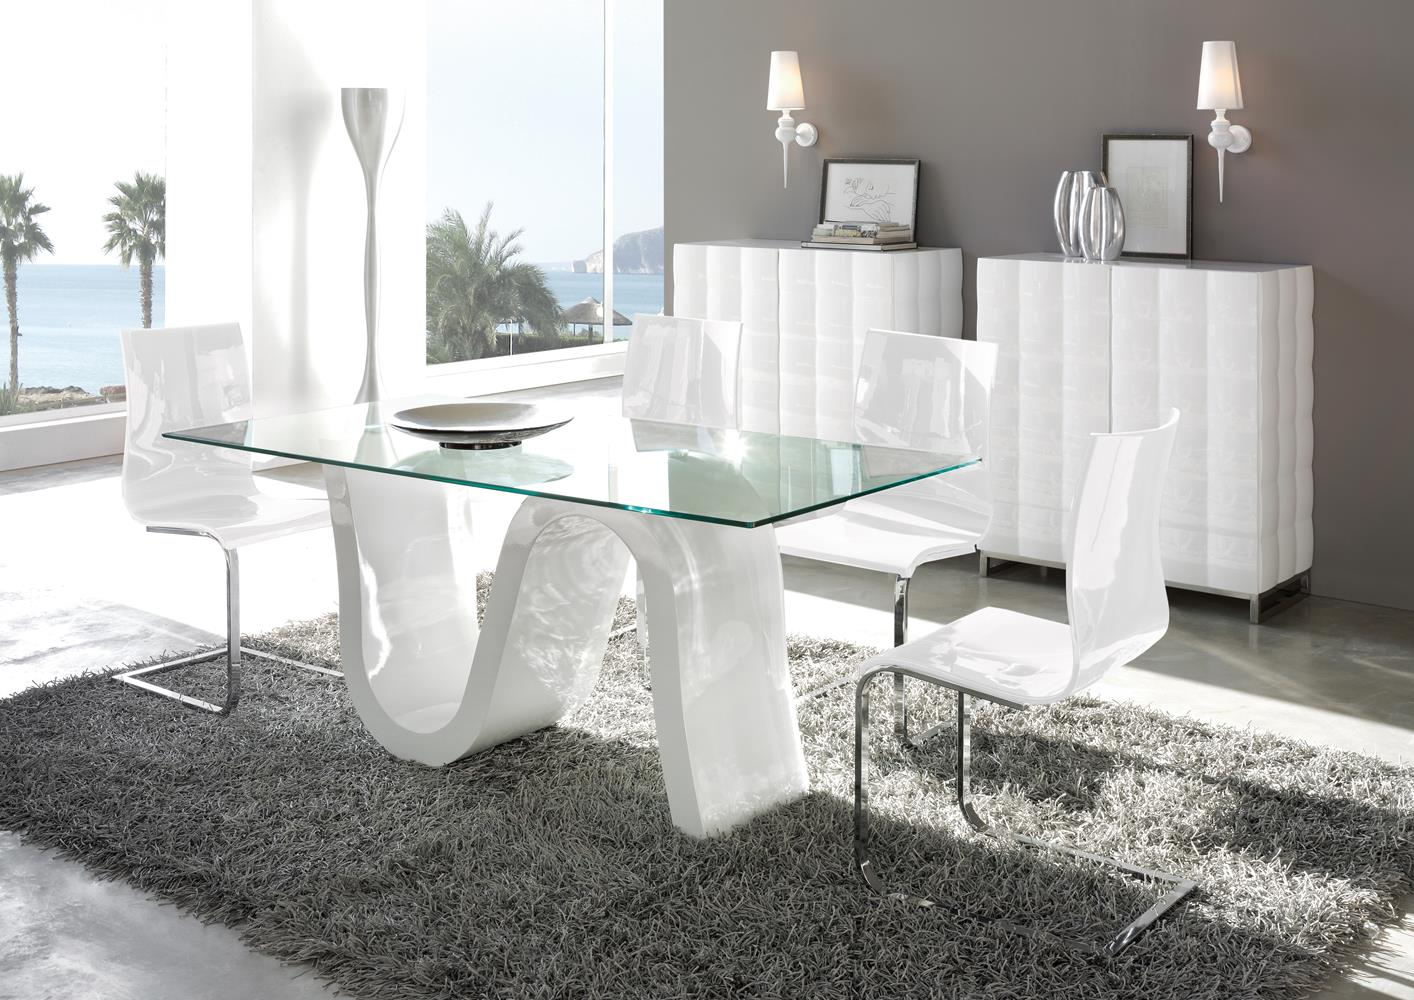 acheter votre table ovale plateau verre pied central laqu blanc chez simeuble. Black Bedroom Furniture Sets. Home Design Ideas